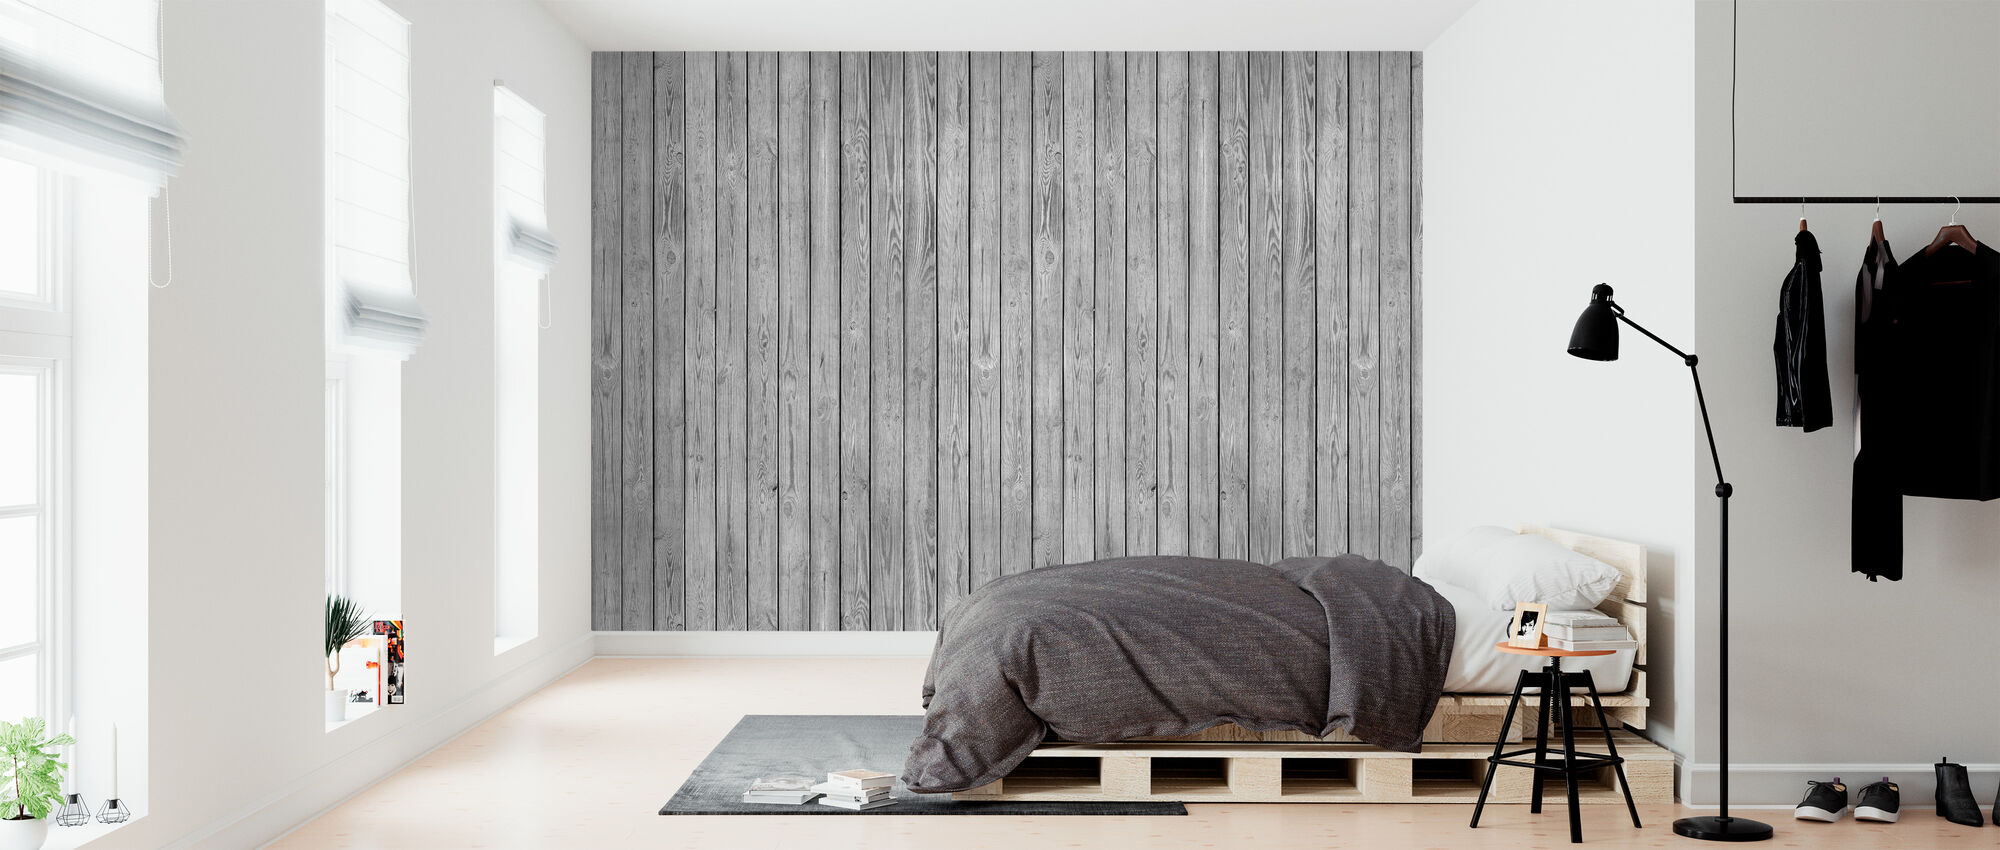 Wooden Plank Wall - Grey - Wallpaper - Bedroom